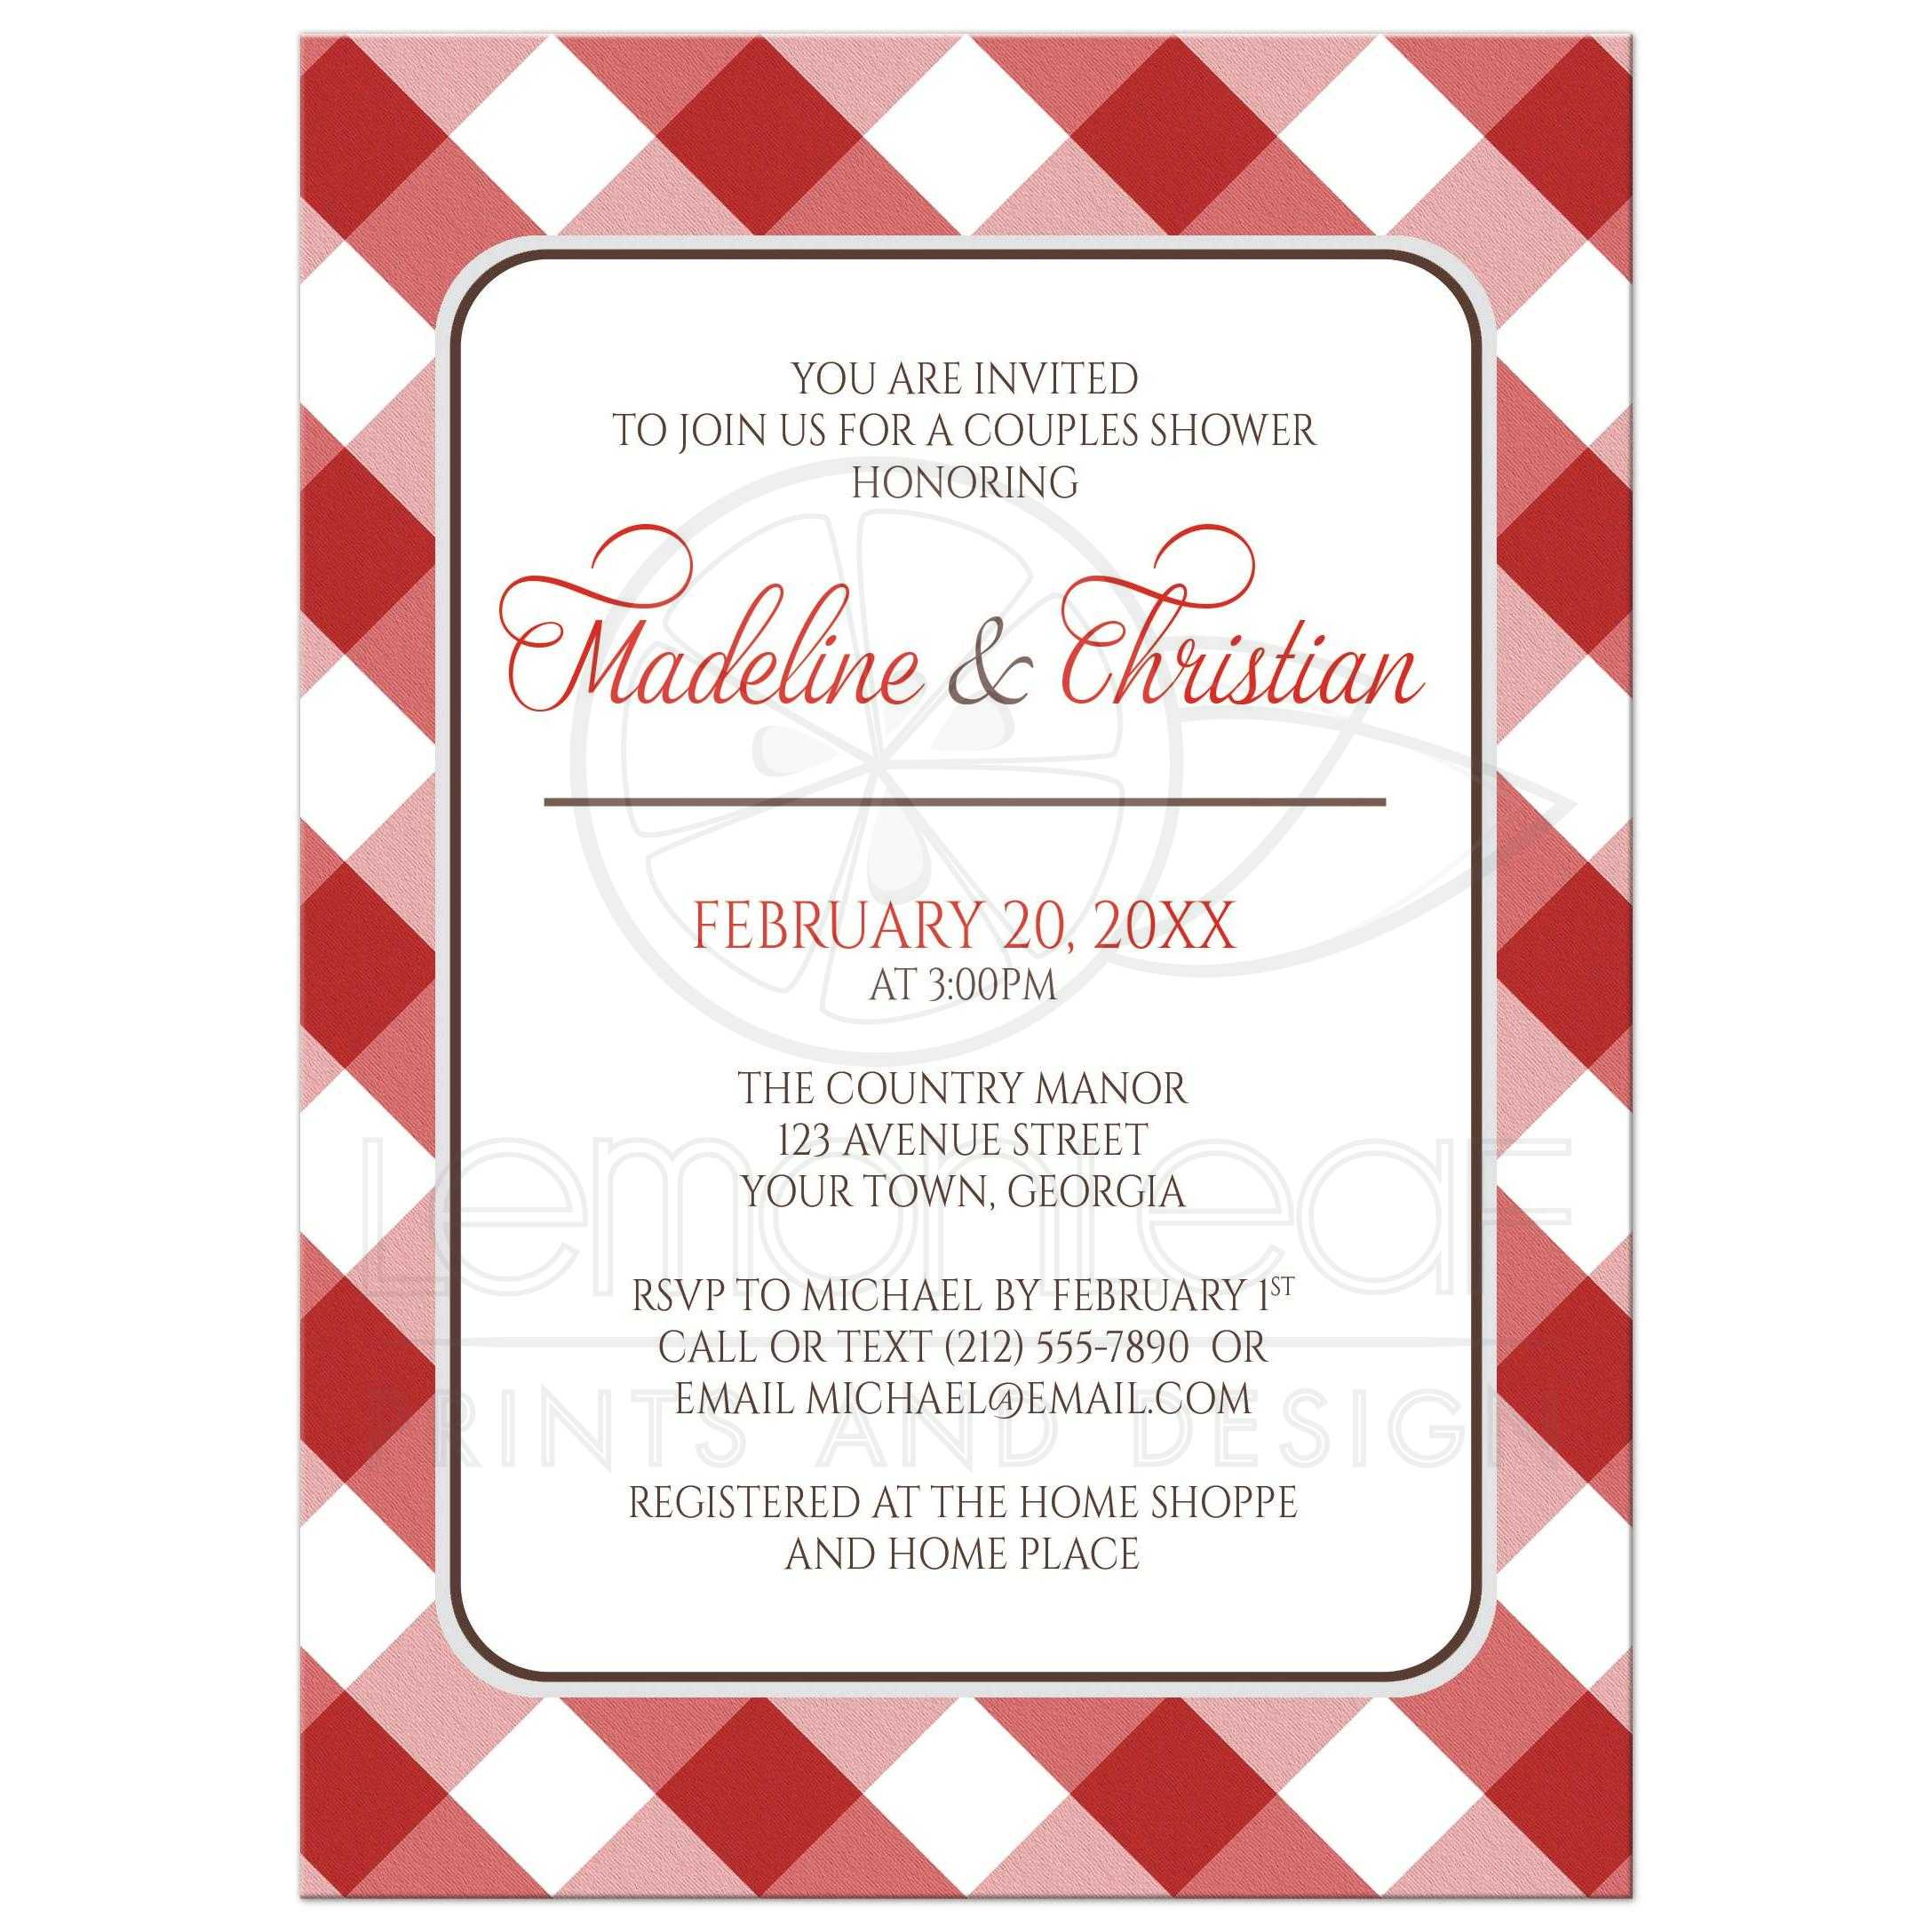 Couples Shower Invitations Red Gingham Country